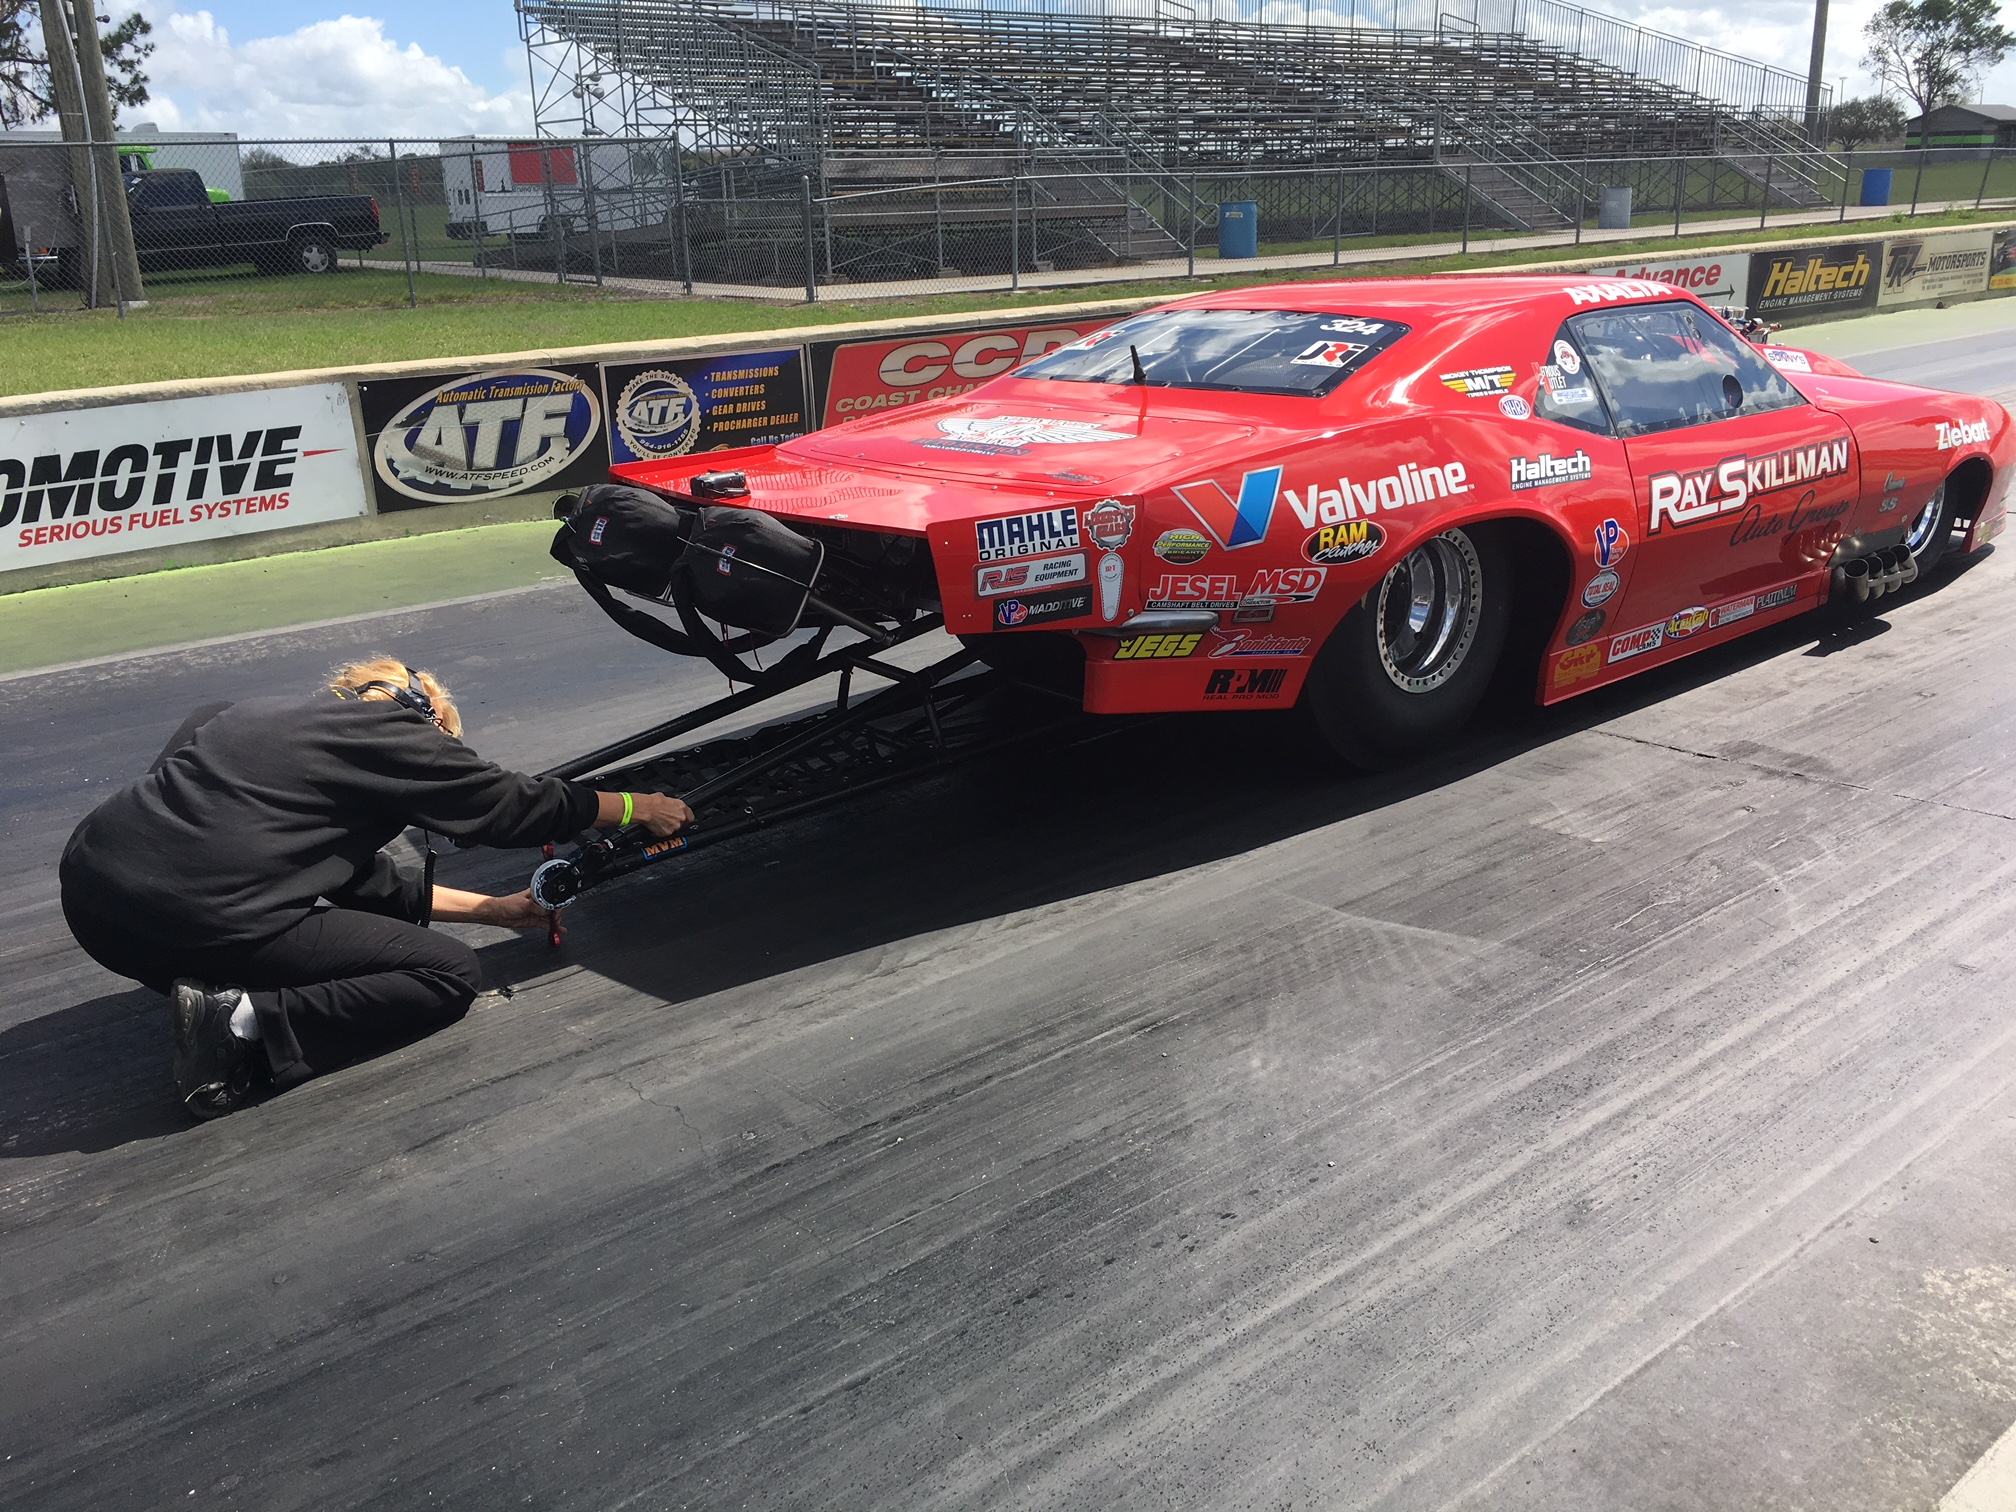 A YEAR OF PERSONAL MISFORTUNE ERASED WITH ONE BILLY GLIDDEN RUN